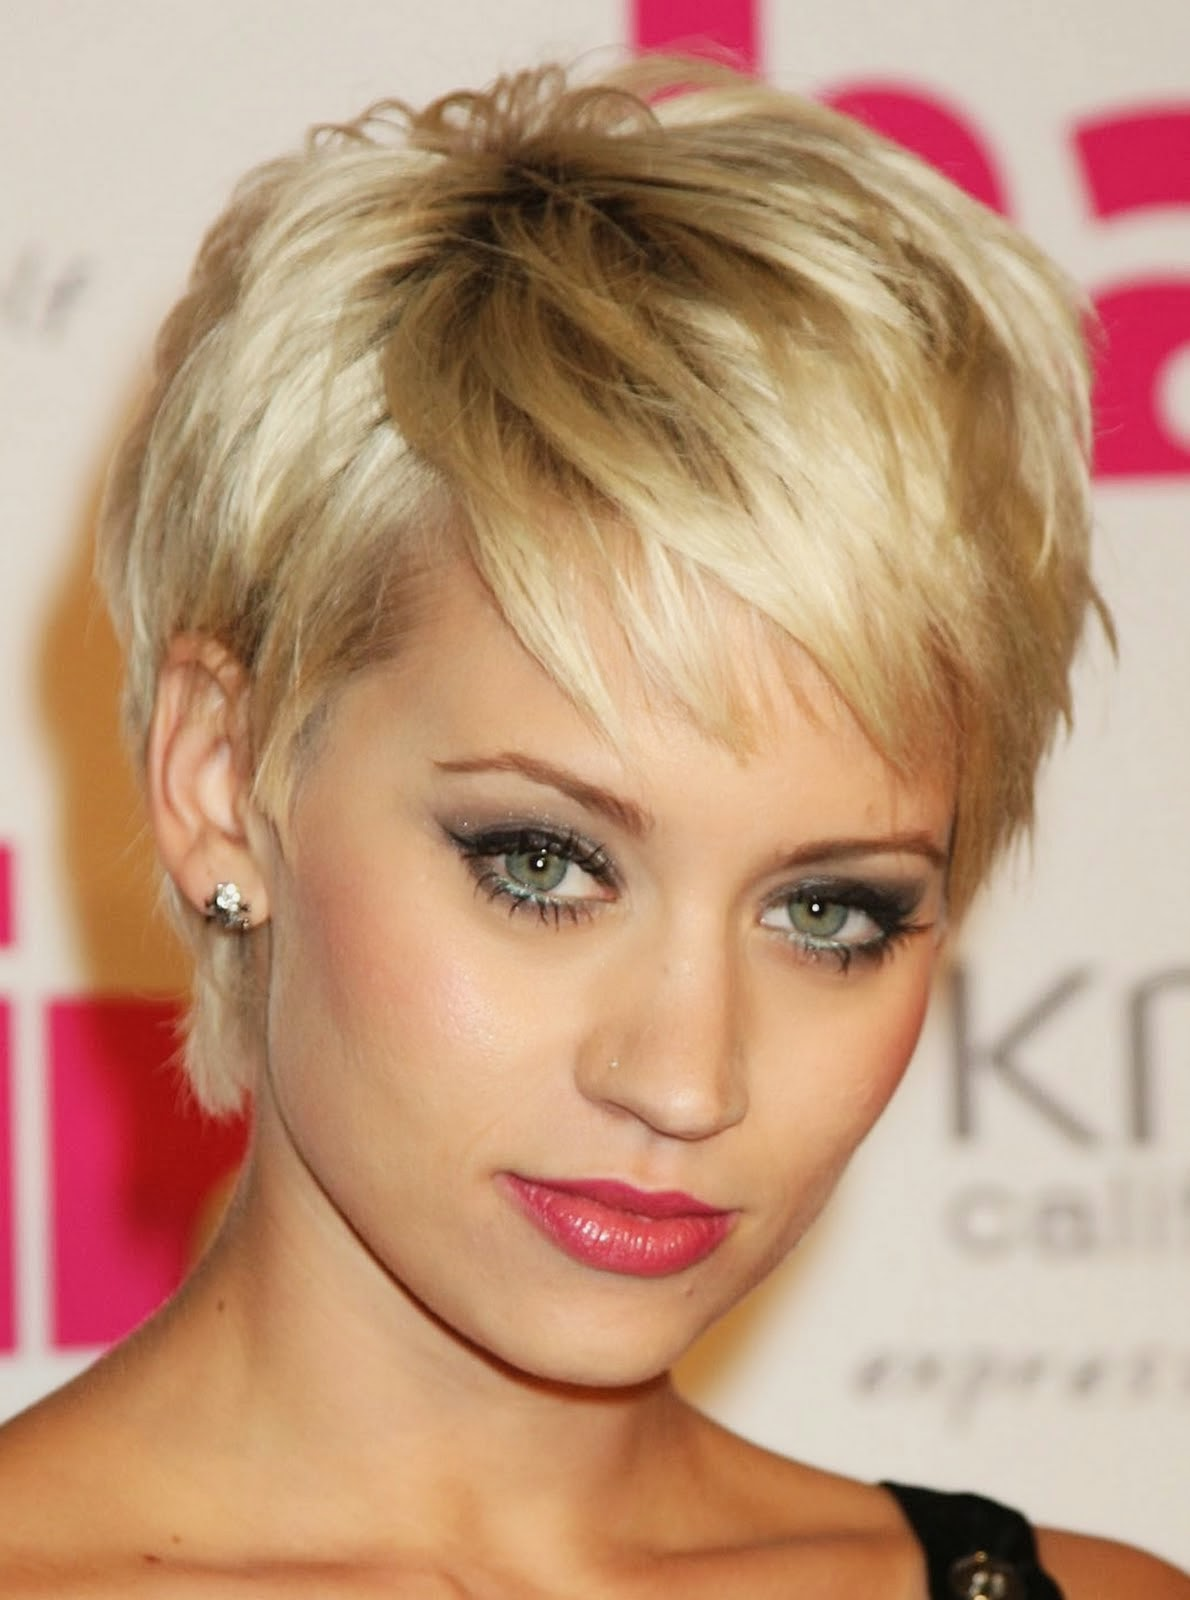 Haircuts For Short Hair : Short Hairstyles for Fine Hair Amazing Hairstyles